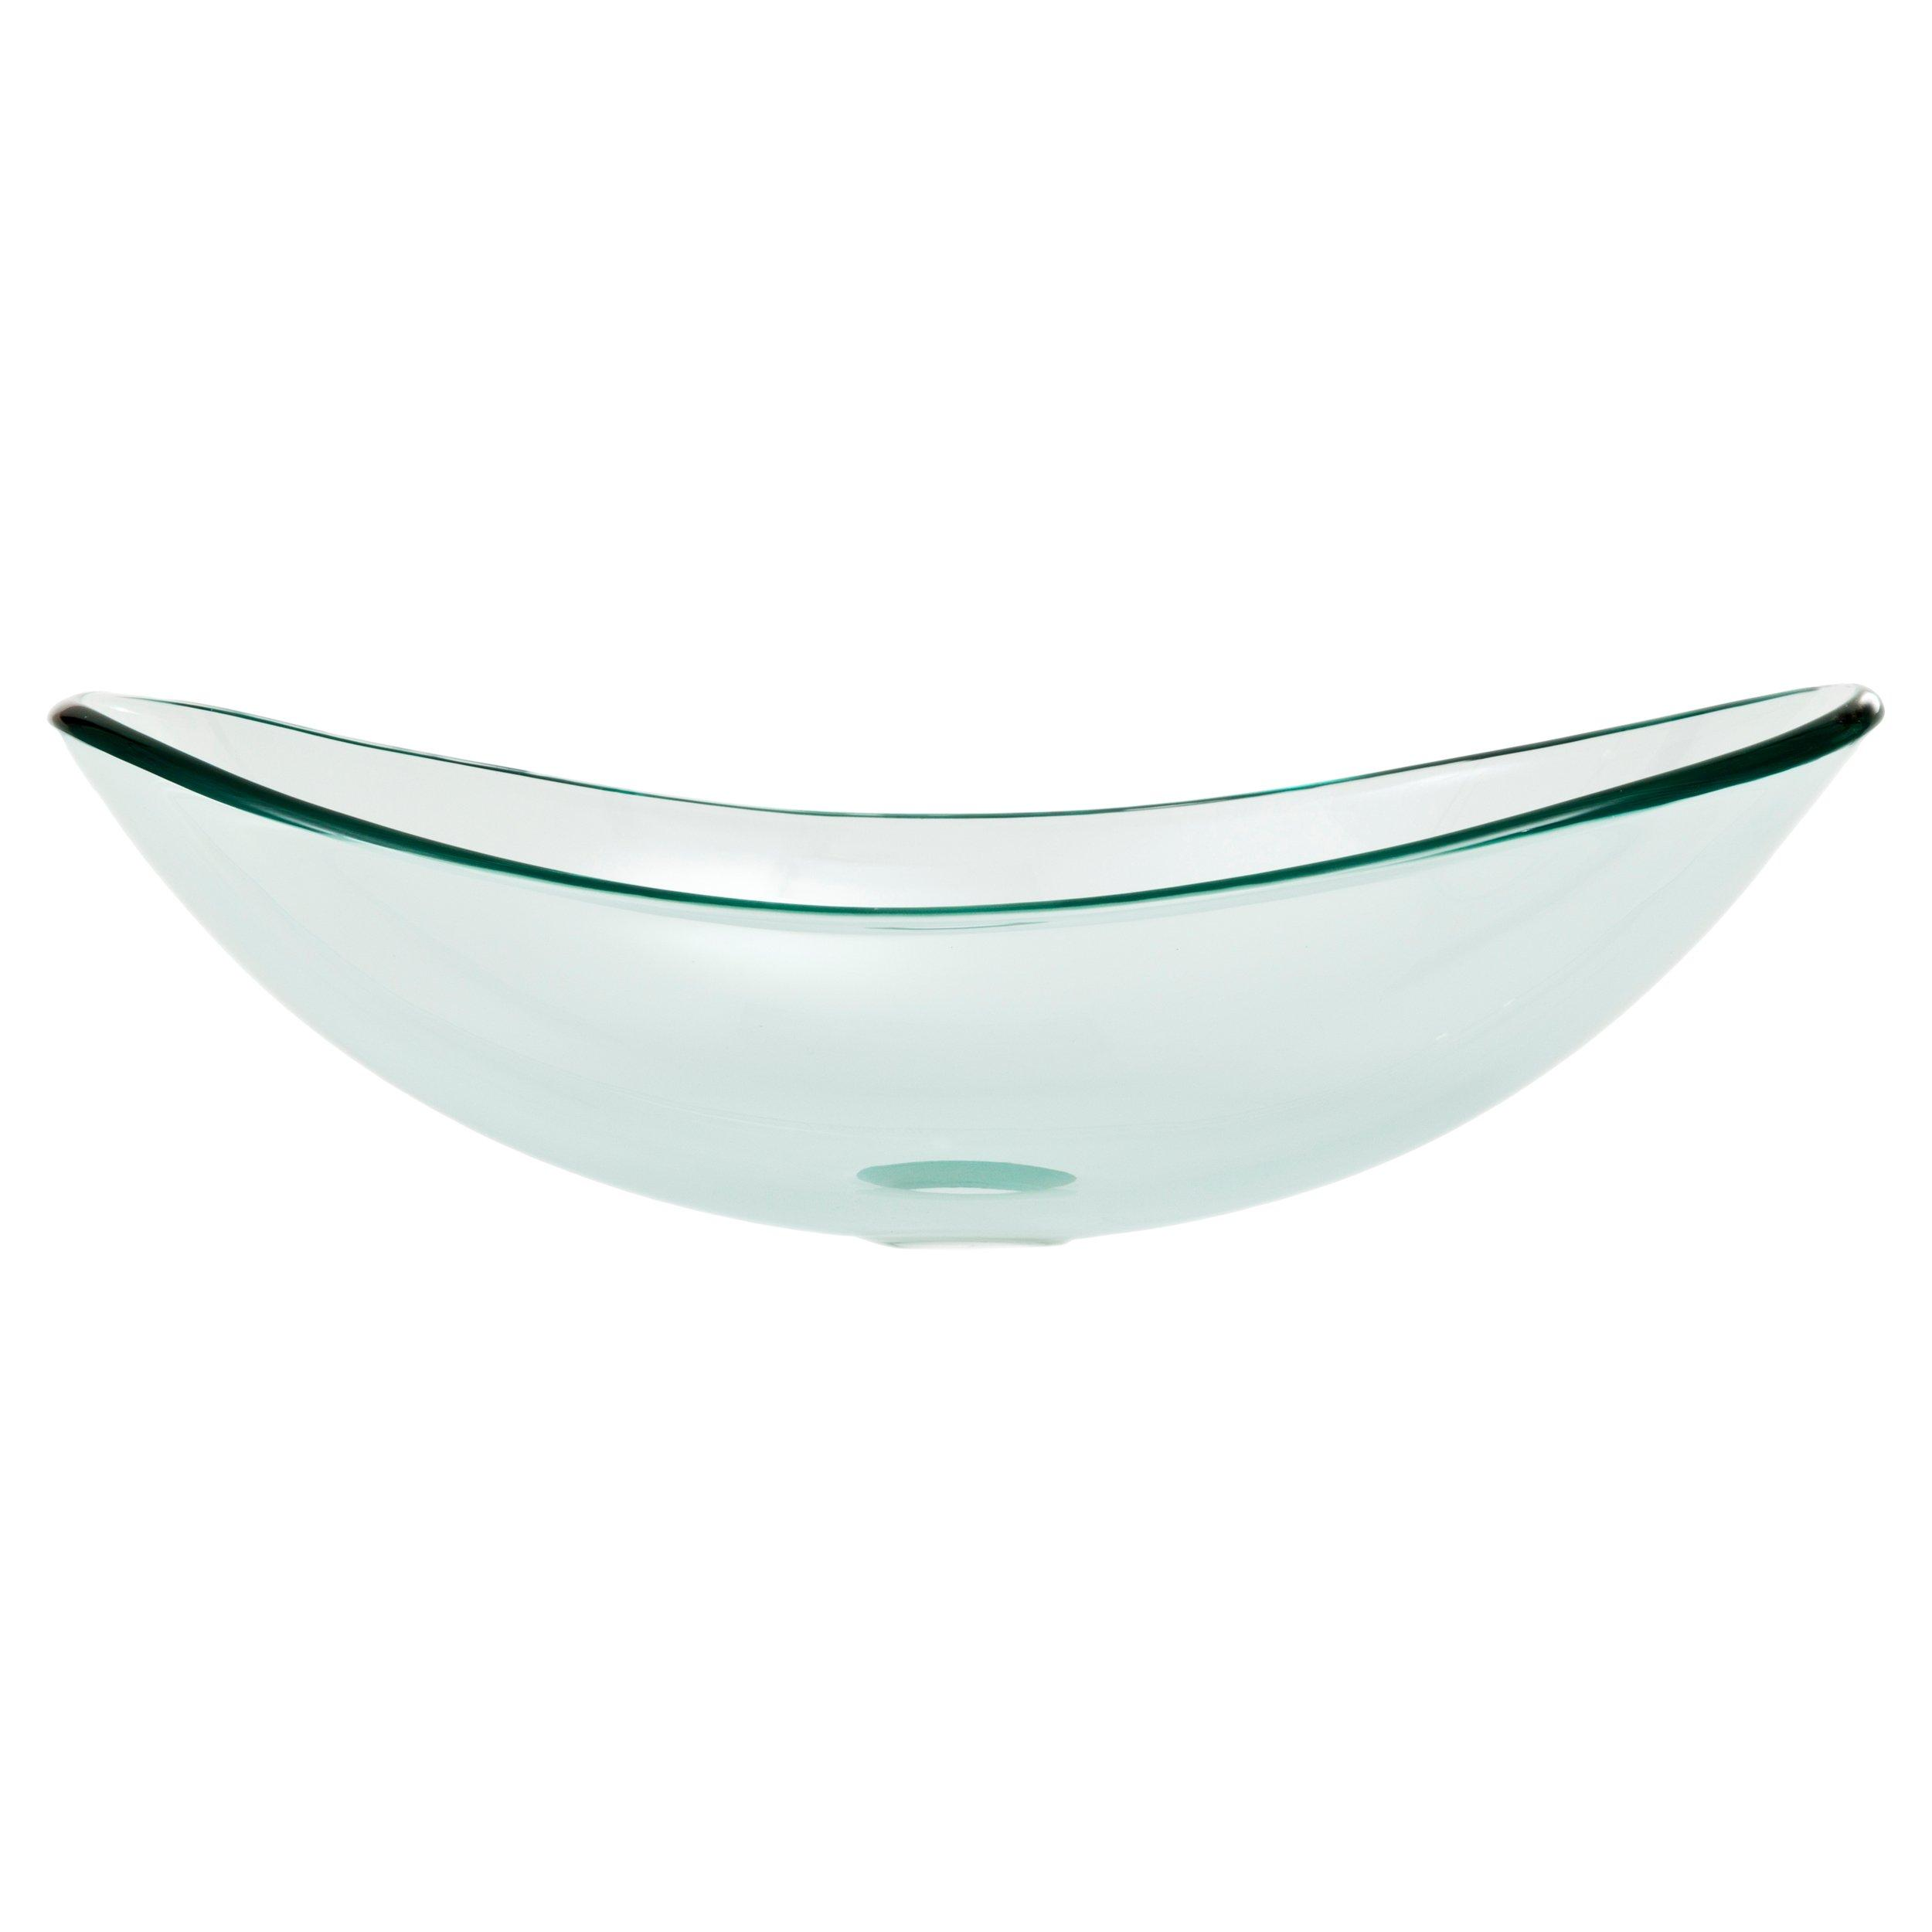 Superieur Oval Glass Vessel Sink